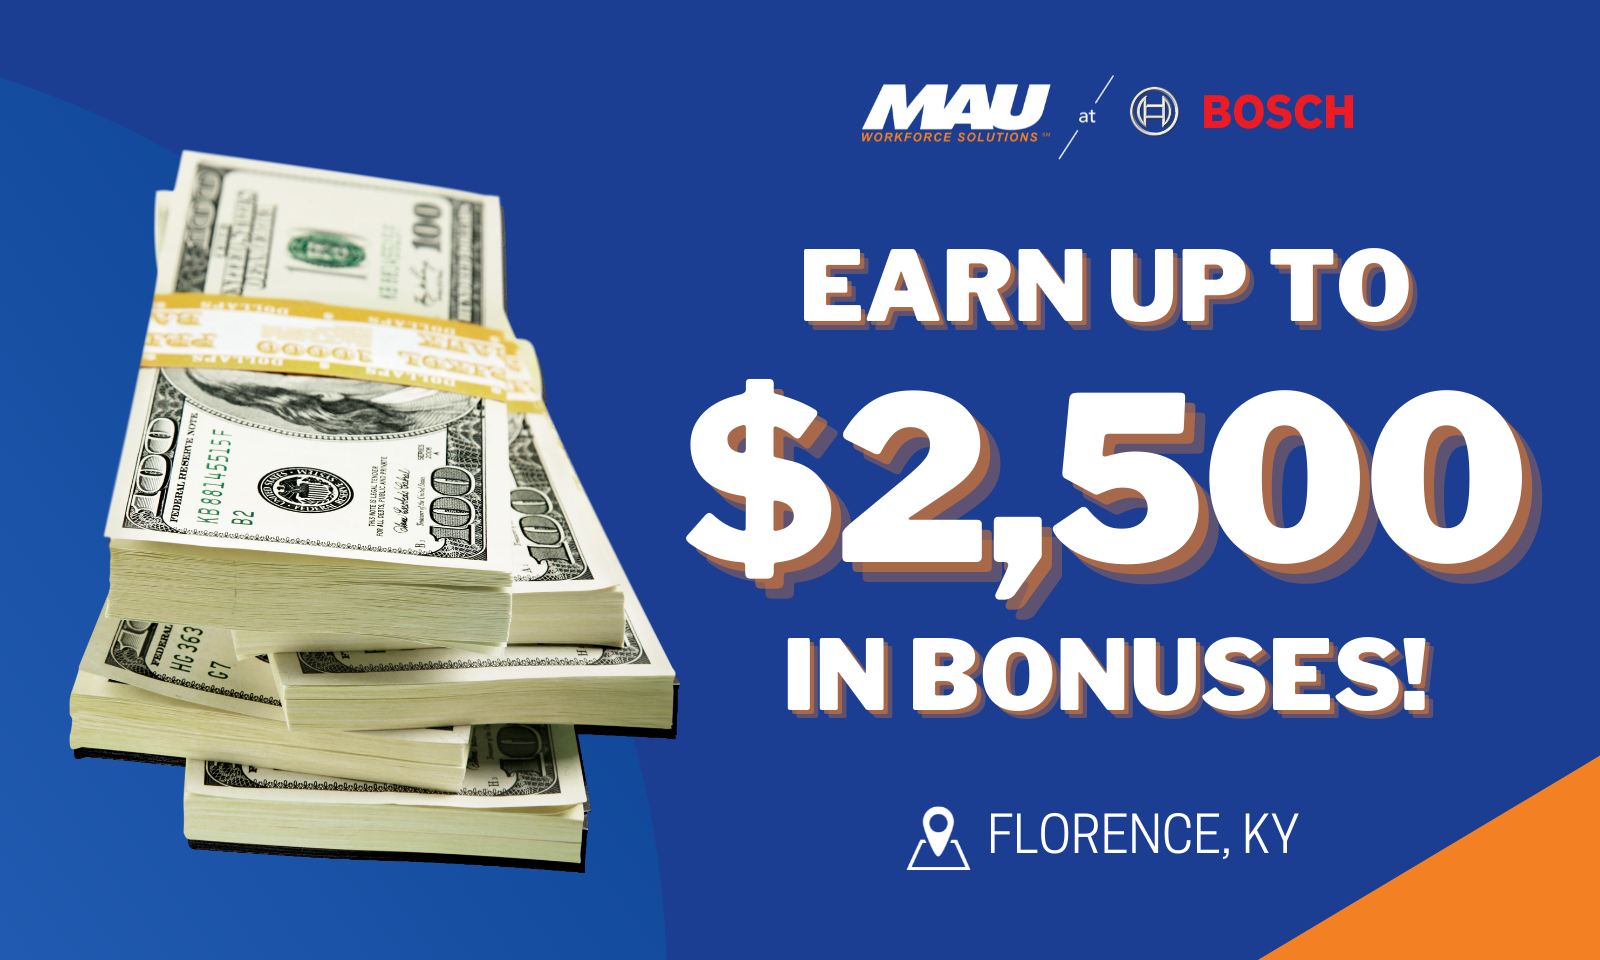 The MAU team at BOSCH in Florence, KY are now offering a $2,500 sign-on bonus!